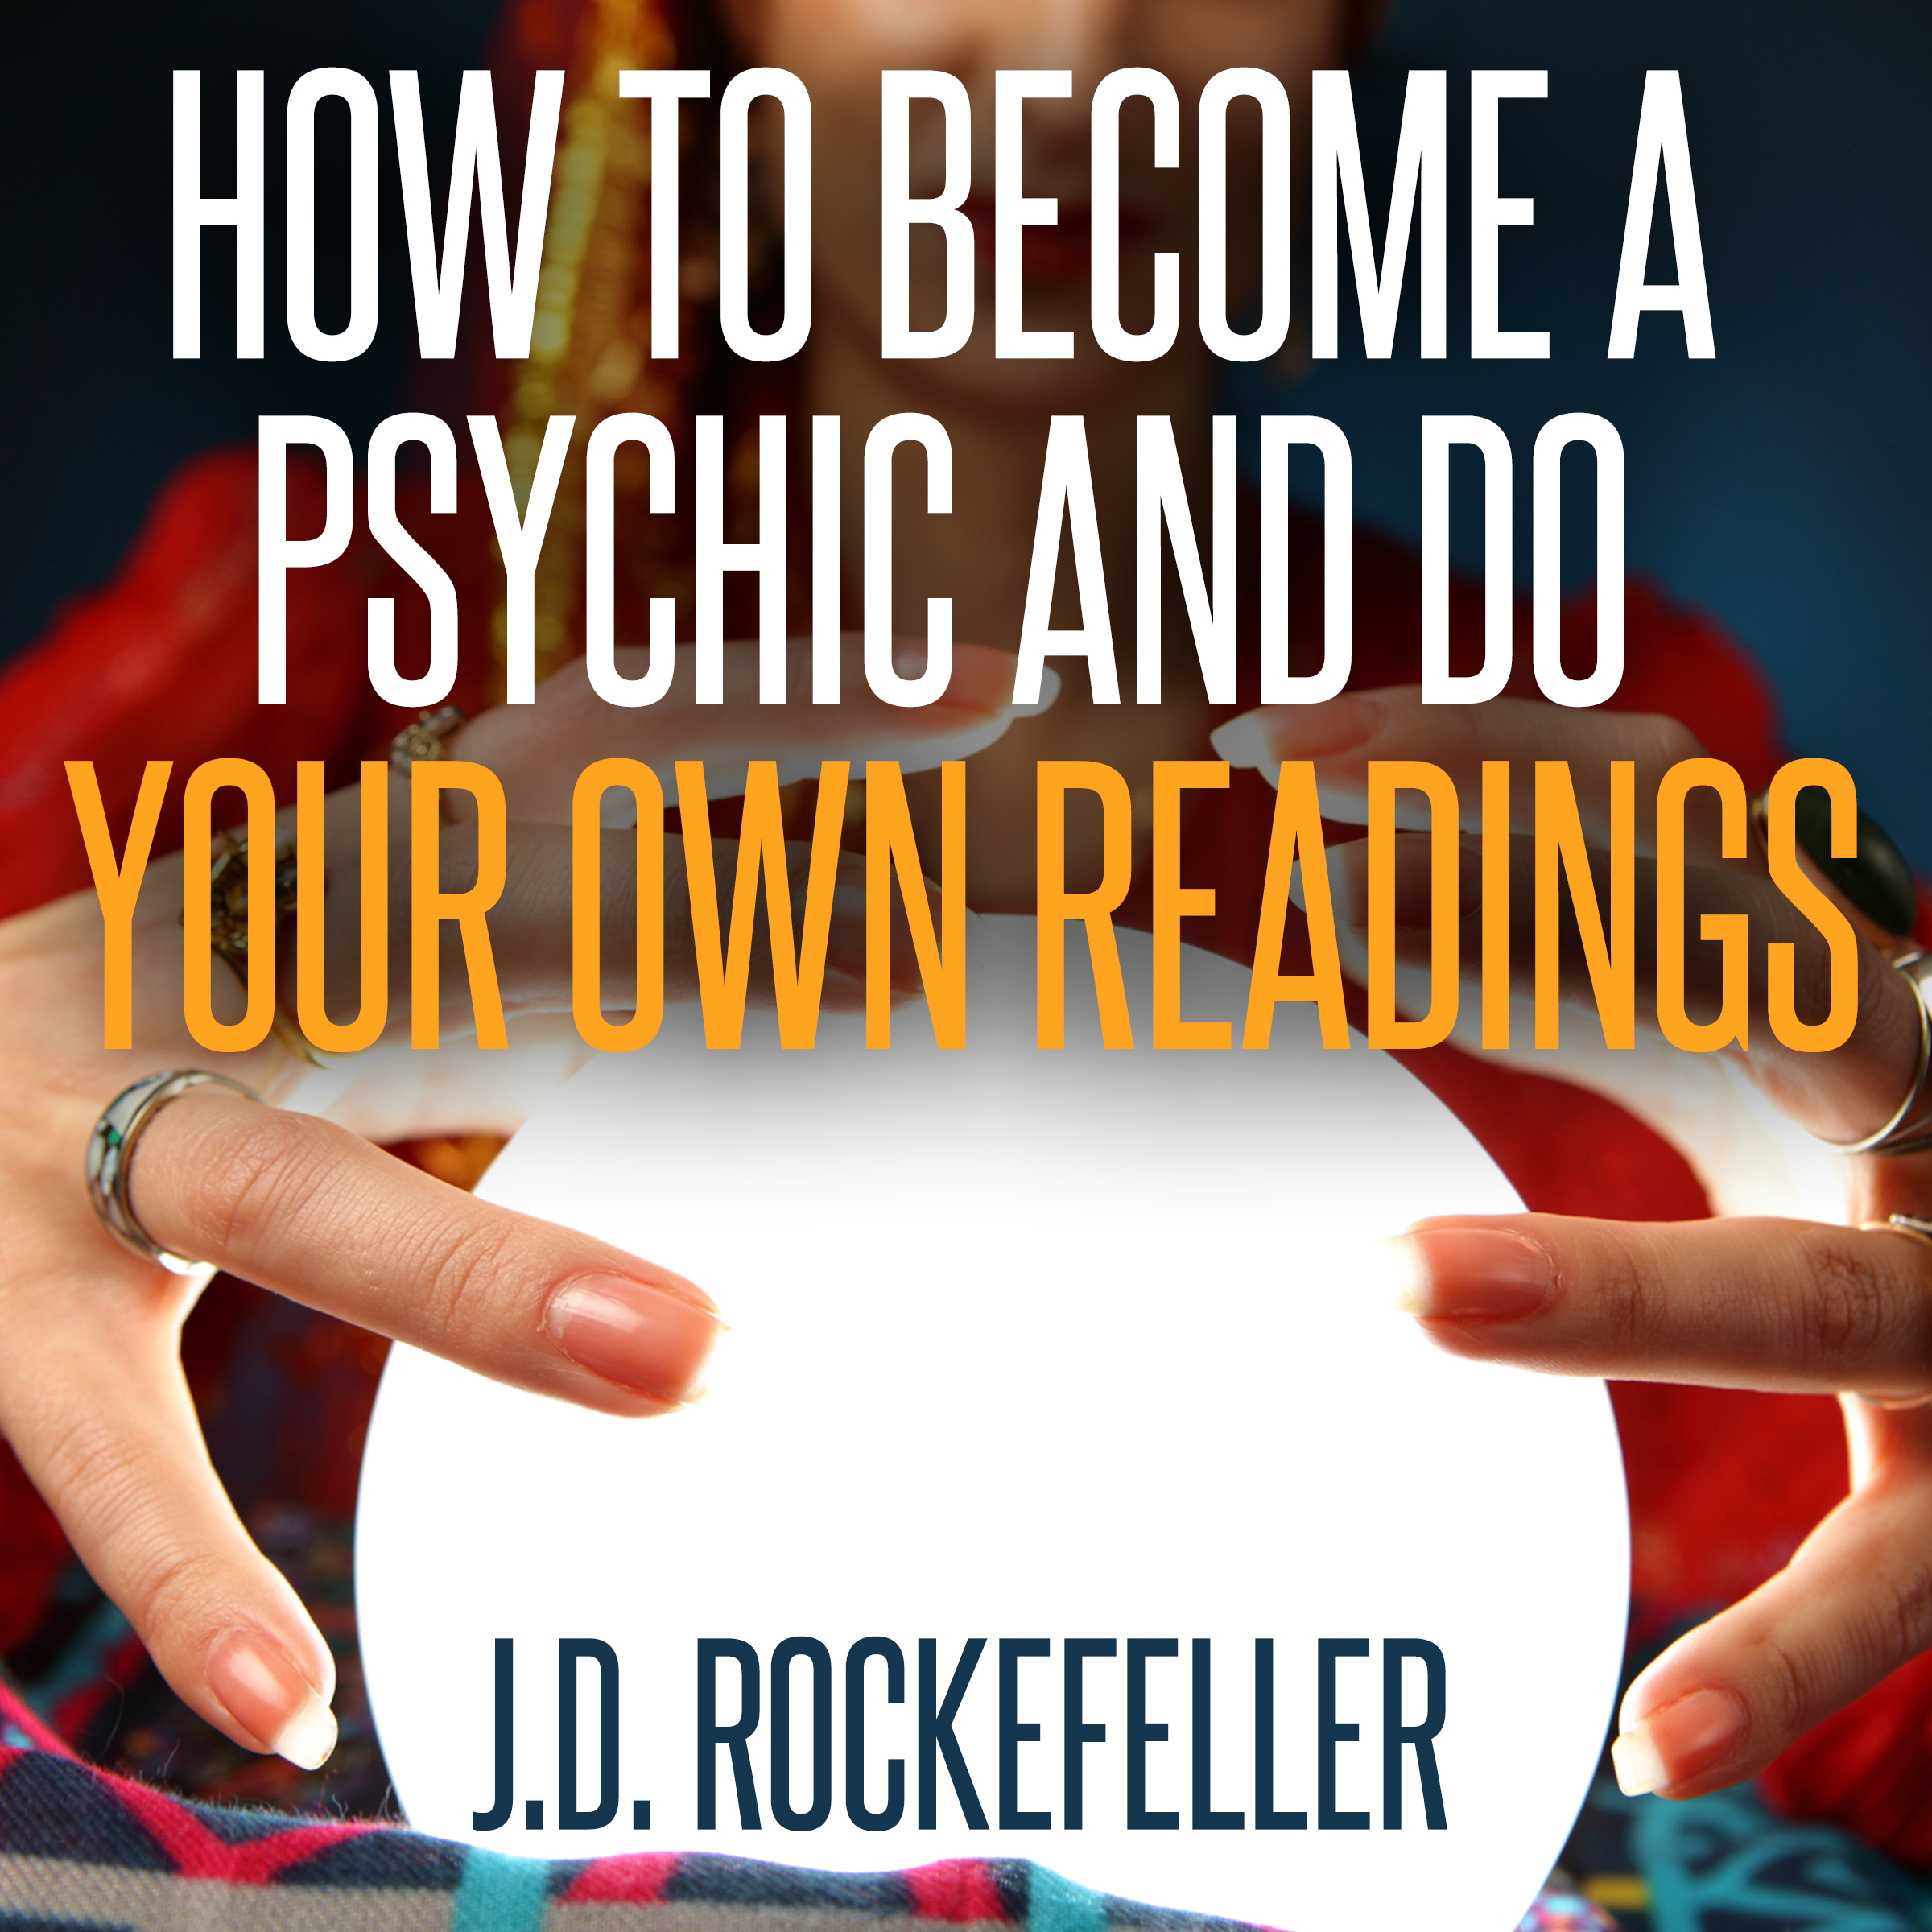 How to become a psychic 82